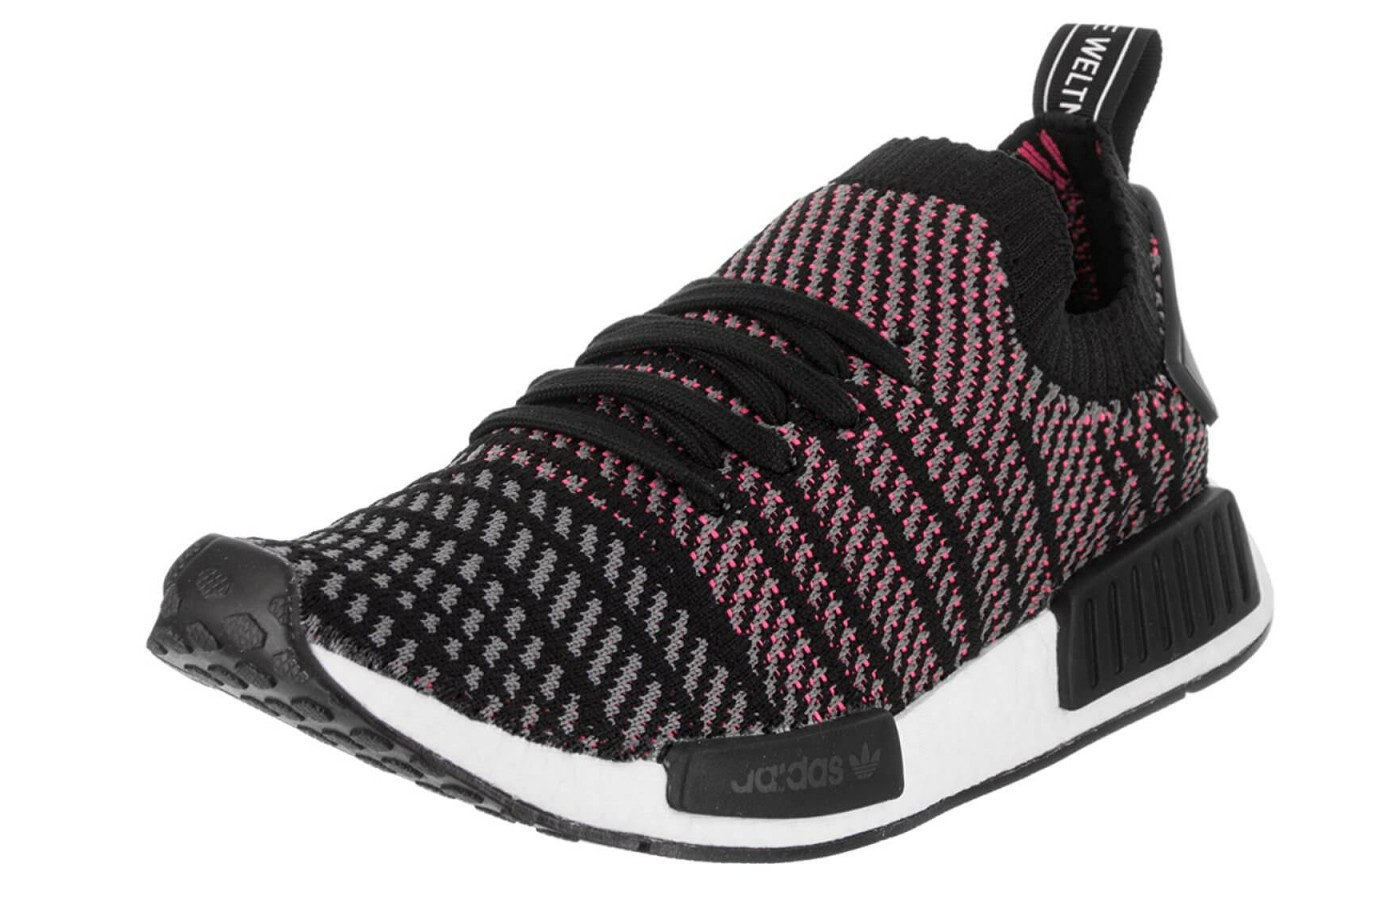 free shipping 20259 05669 The Adidas NMD R1 Stlt Primeknit features a Primeknit upper ...